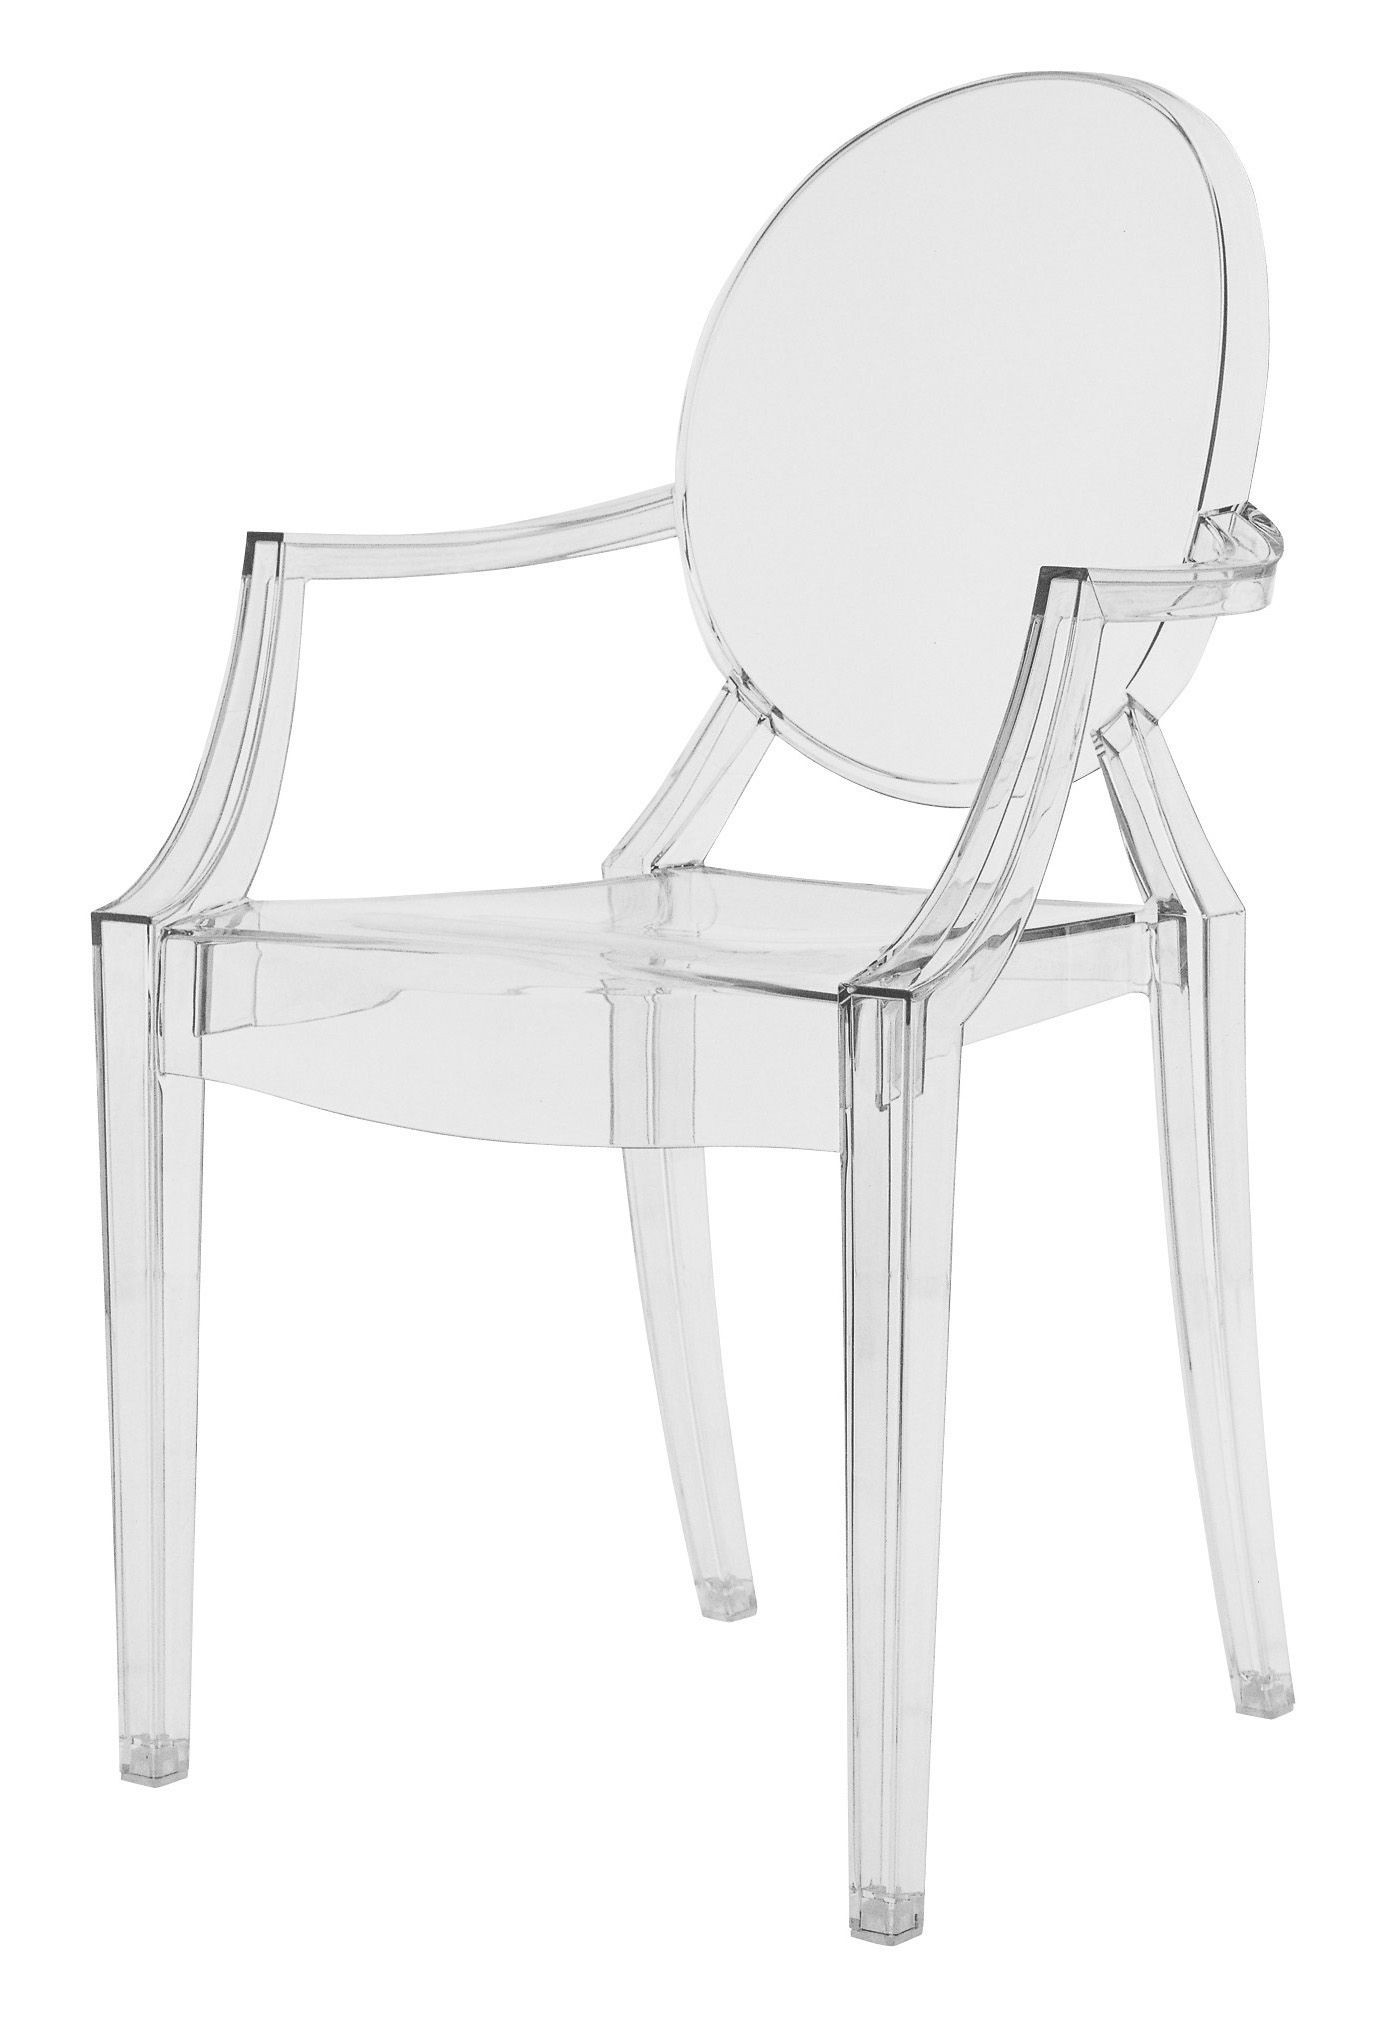 la chaise louis ghost philippe starck histoire des arts. Black Bedroom Furniture Sets. Home Design Ideas